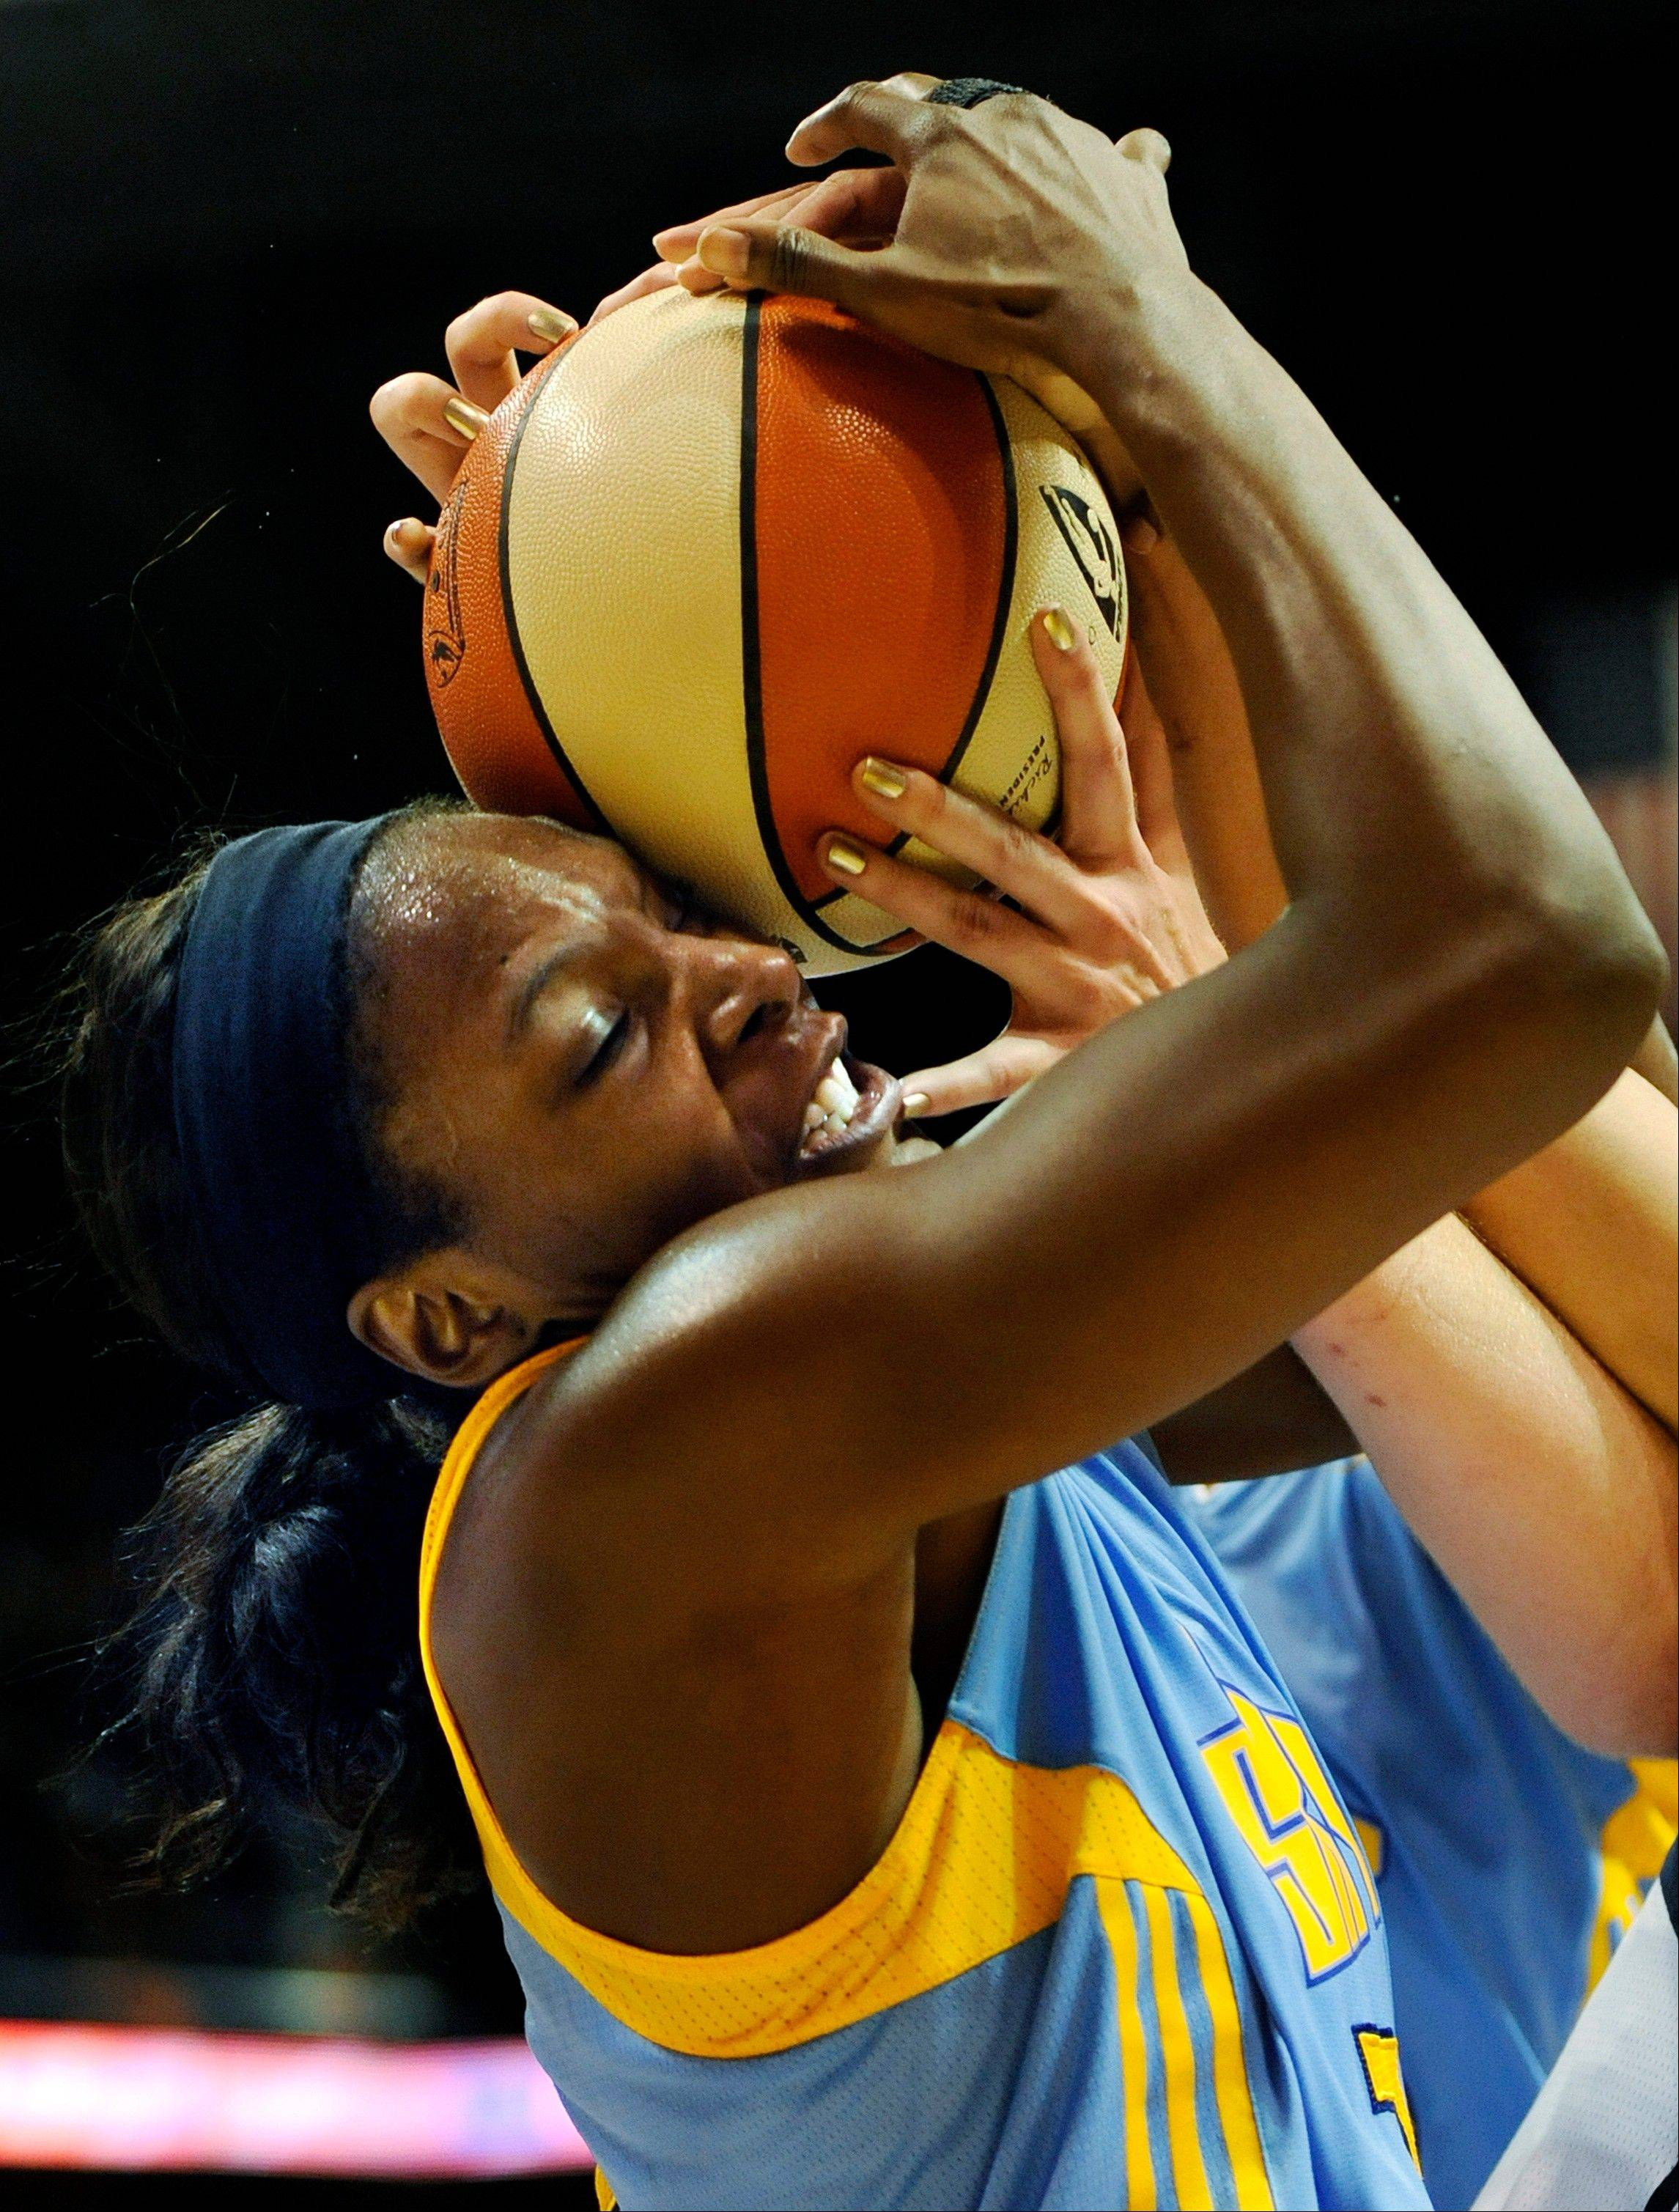 Shay Murphy of the Sky snags an offensive rebound Sunday against the Connecticut Sun. Murphy's all-around game helped the Sky snap a nine-game losing streak and beat the team with the best record in the Eastern Conference.